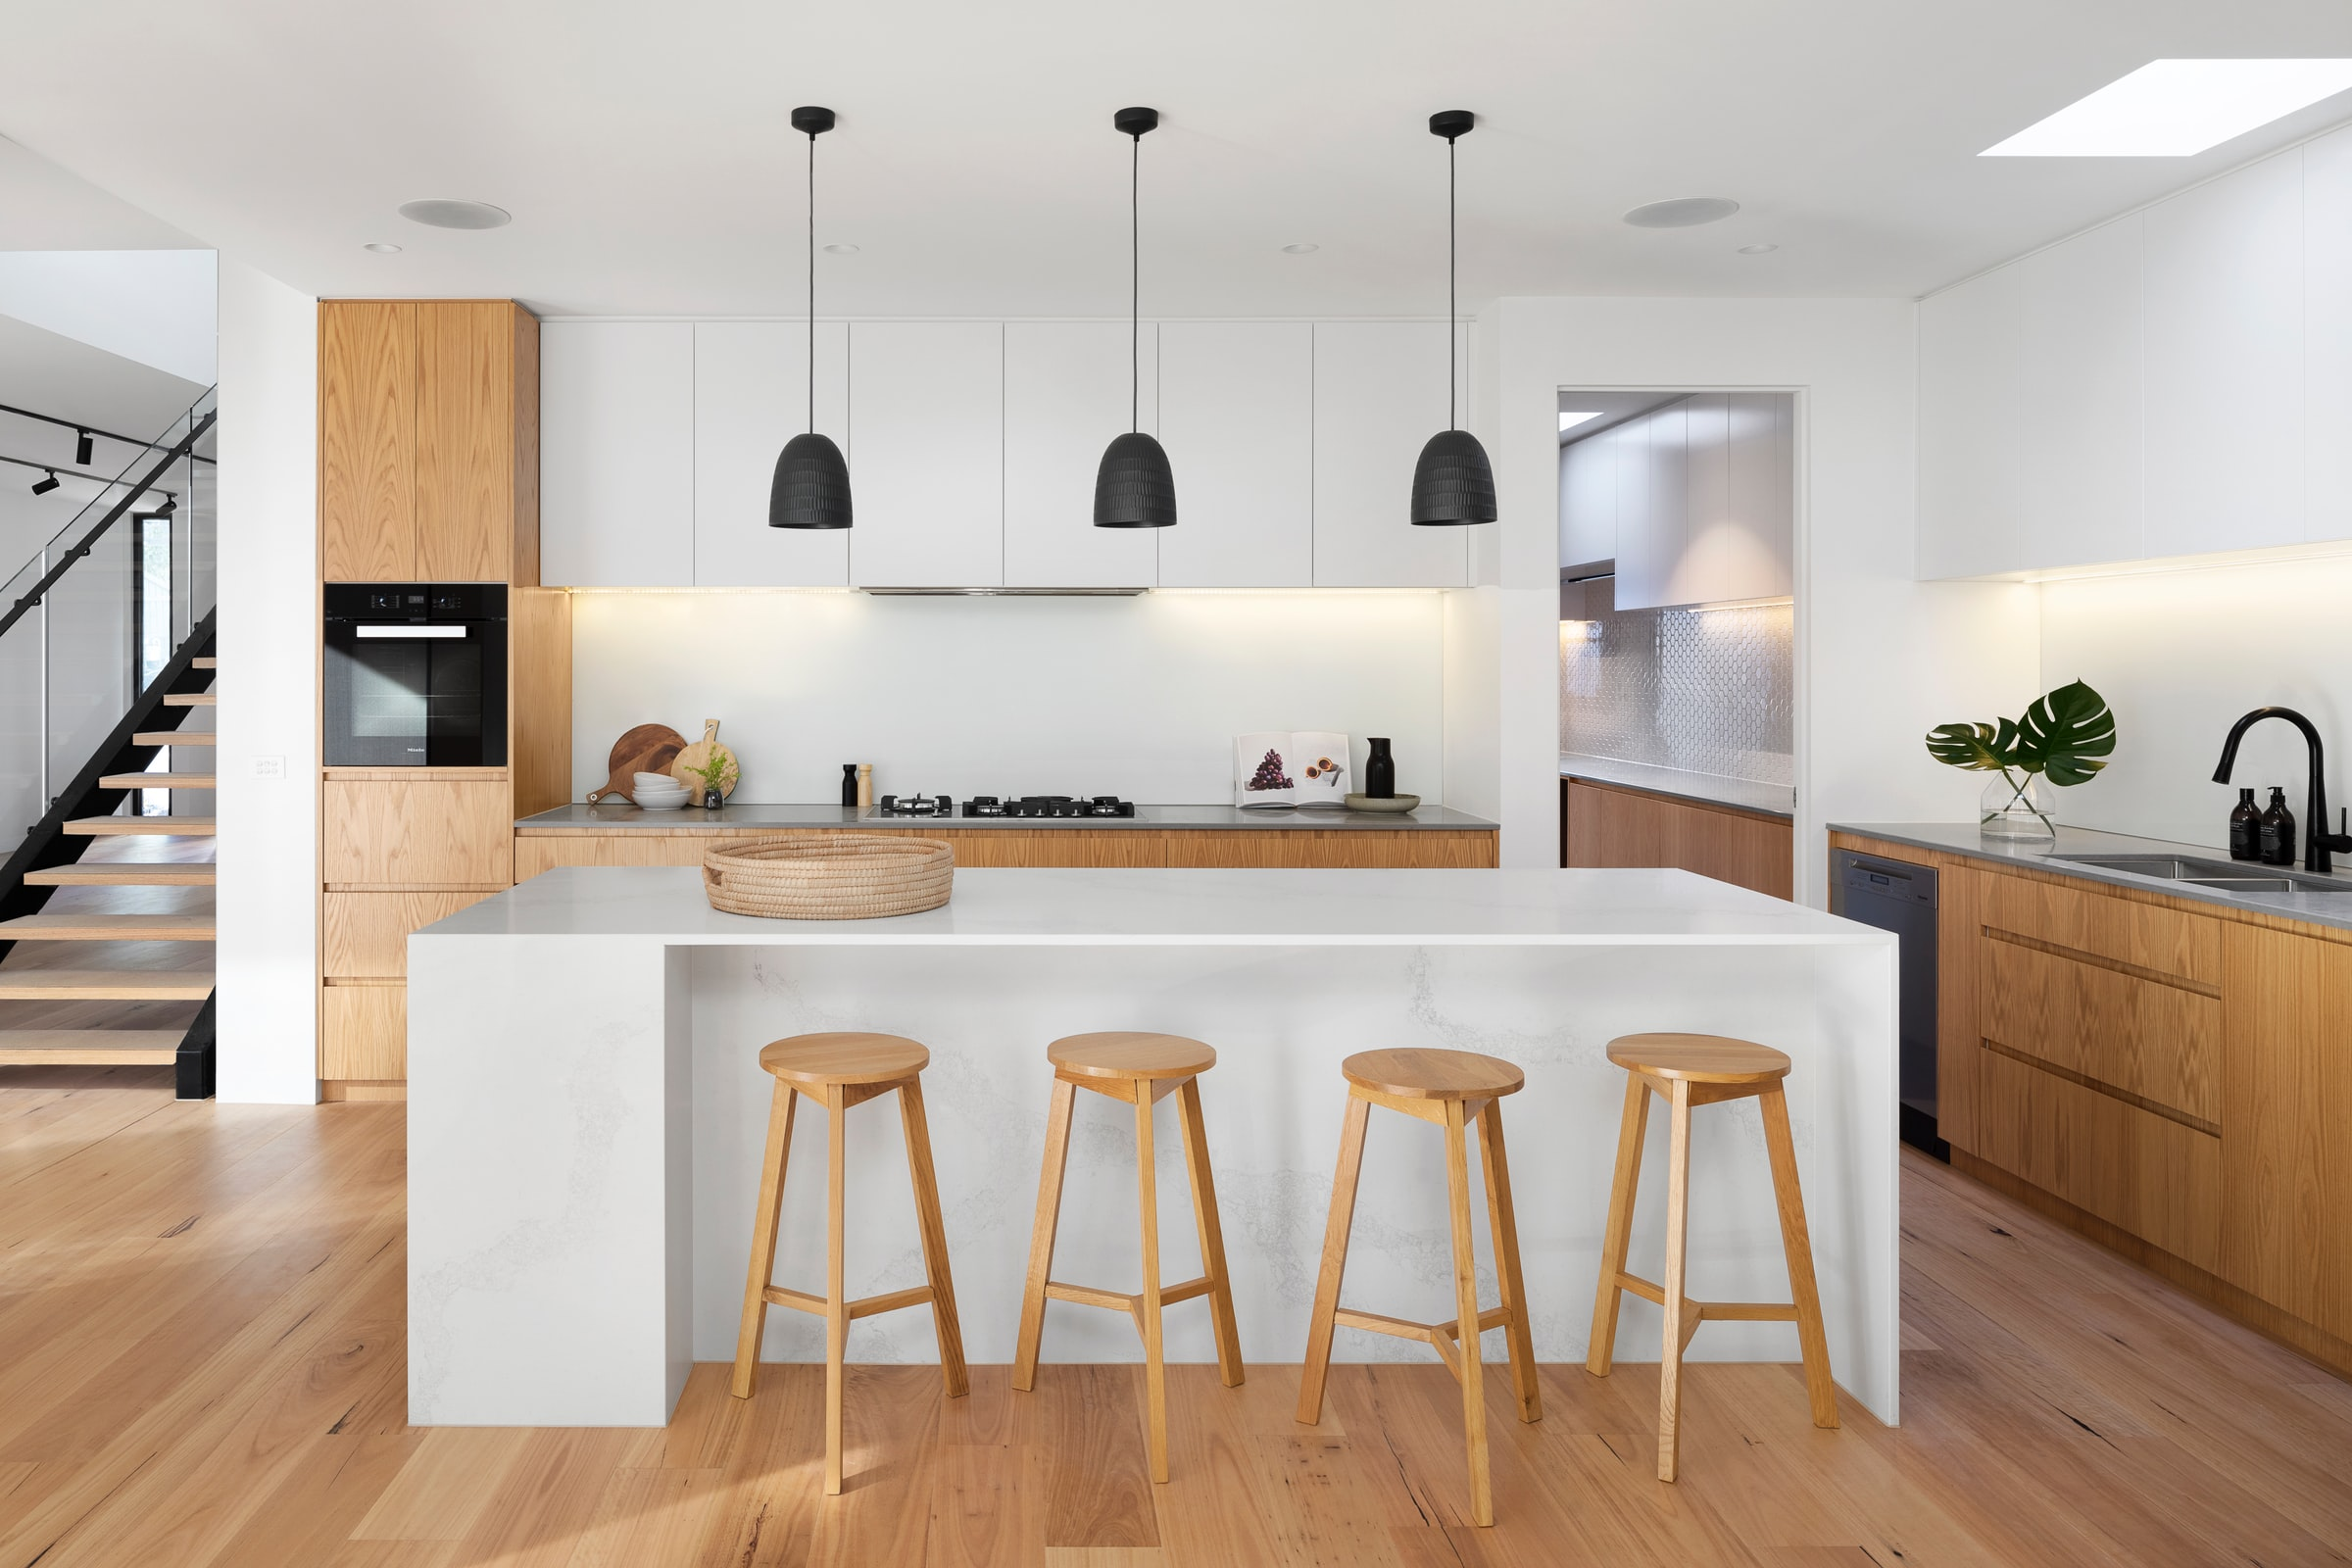 Simple and refined Scandinavian-style cuisine. The cabinets and stools are made of wood, the counter is white.